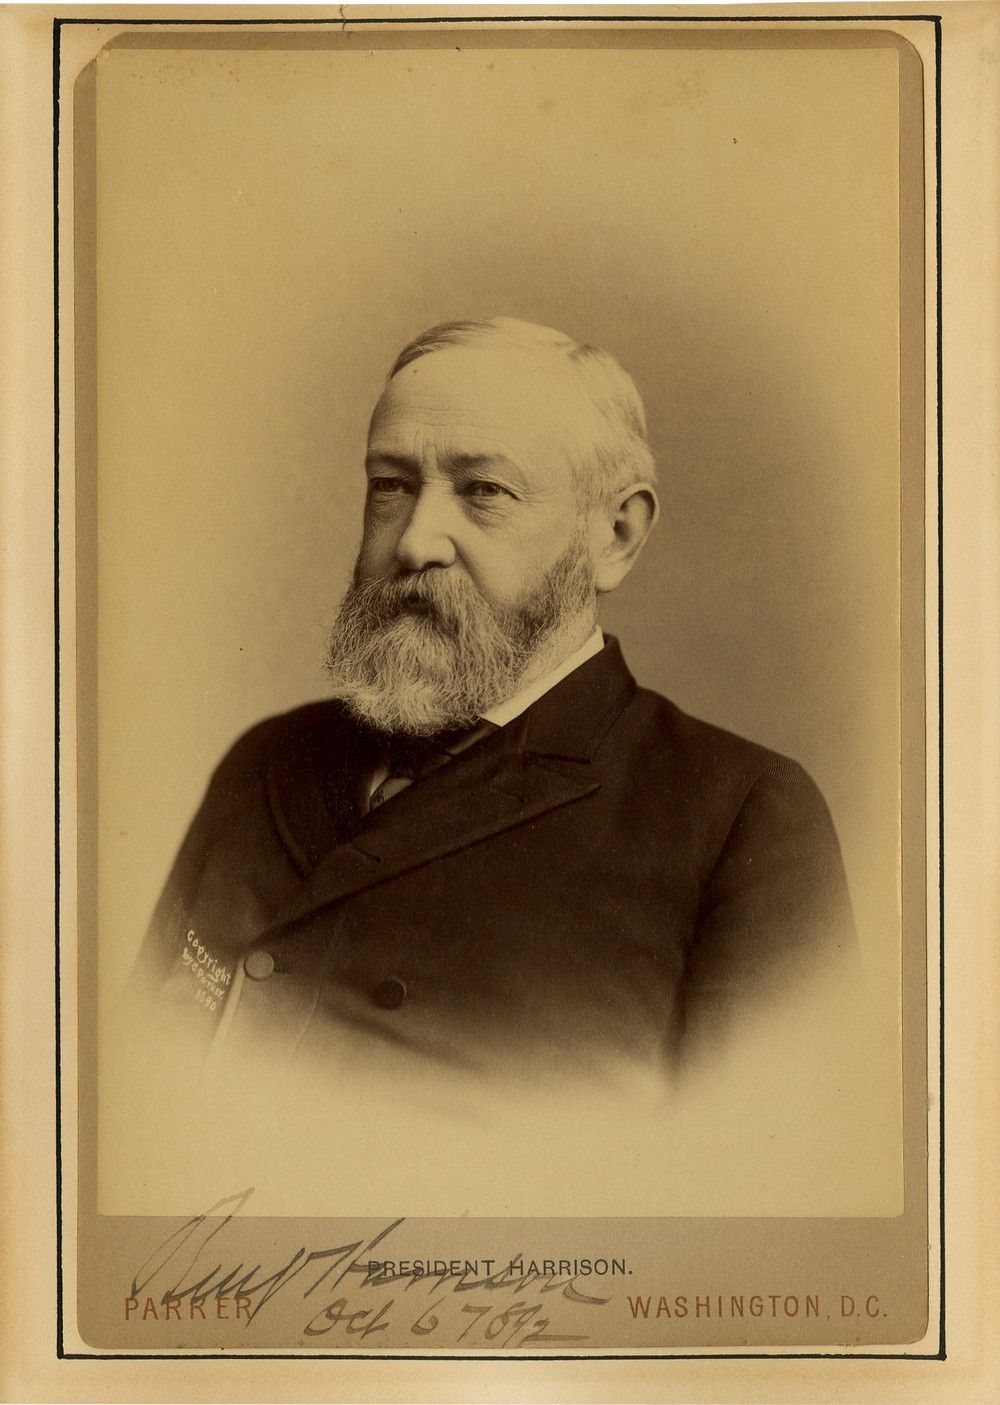 A Scarce Signed Photograph of Benjamin Harrison as President